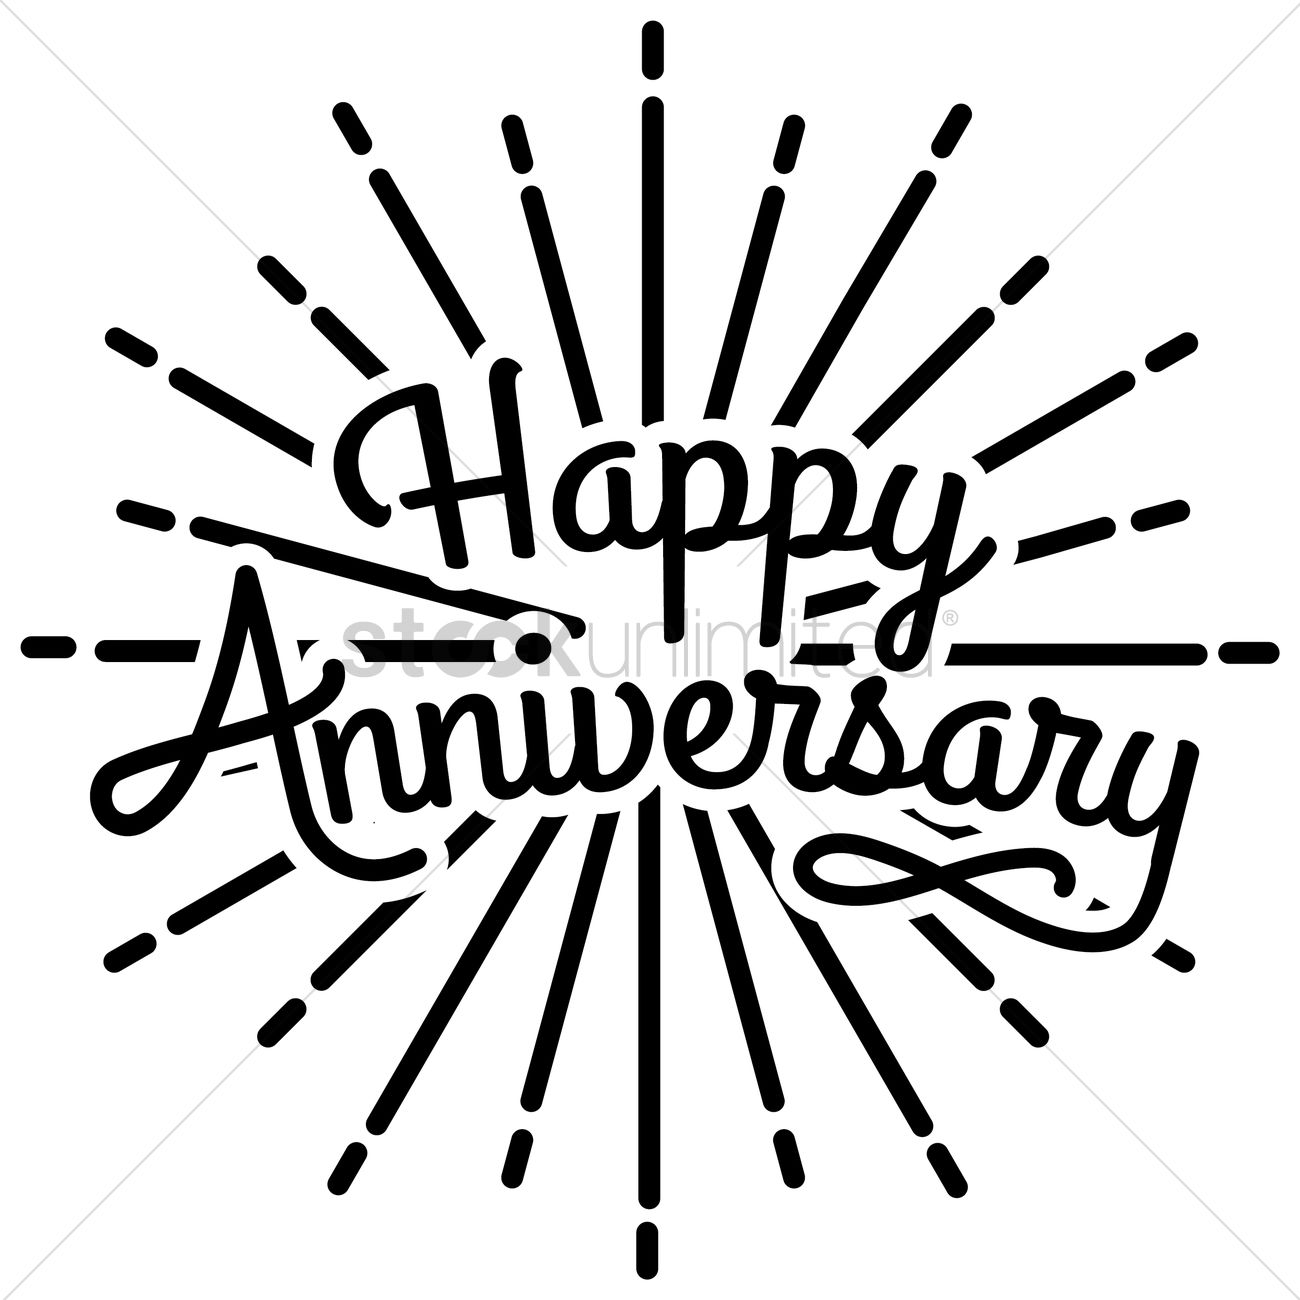 Happy anniversary greeting text vector image 1524969 stockunlimited happy anniversary greeting text vector graphic kristyandbryce Choice Image